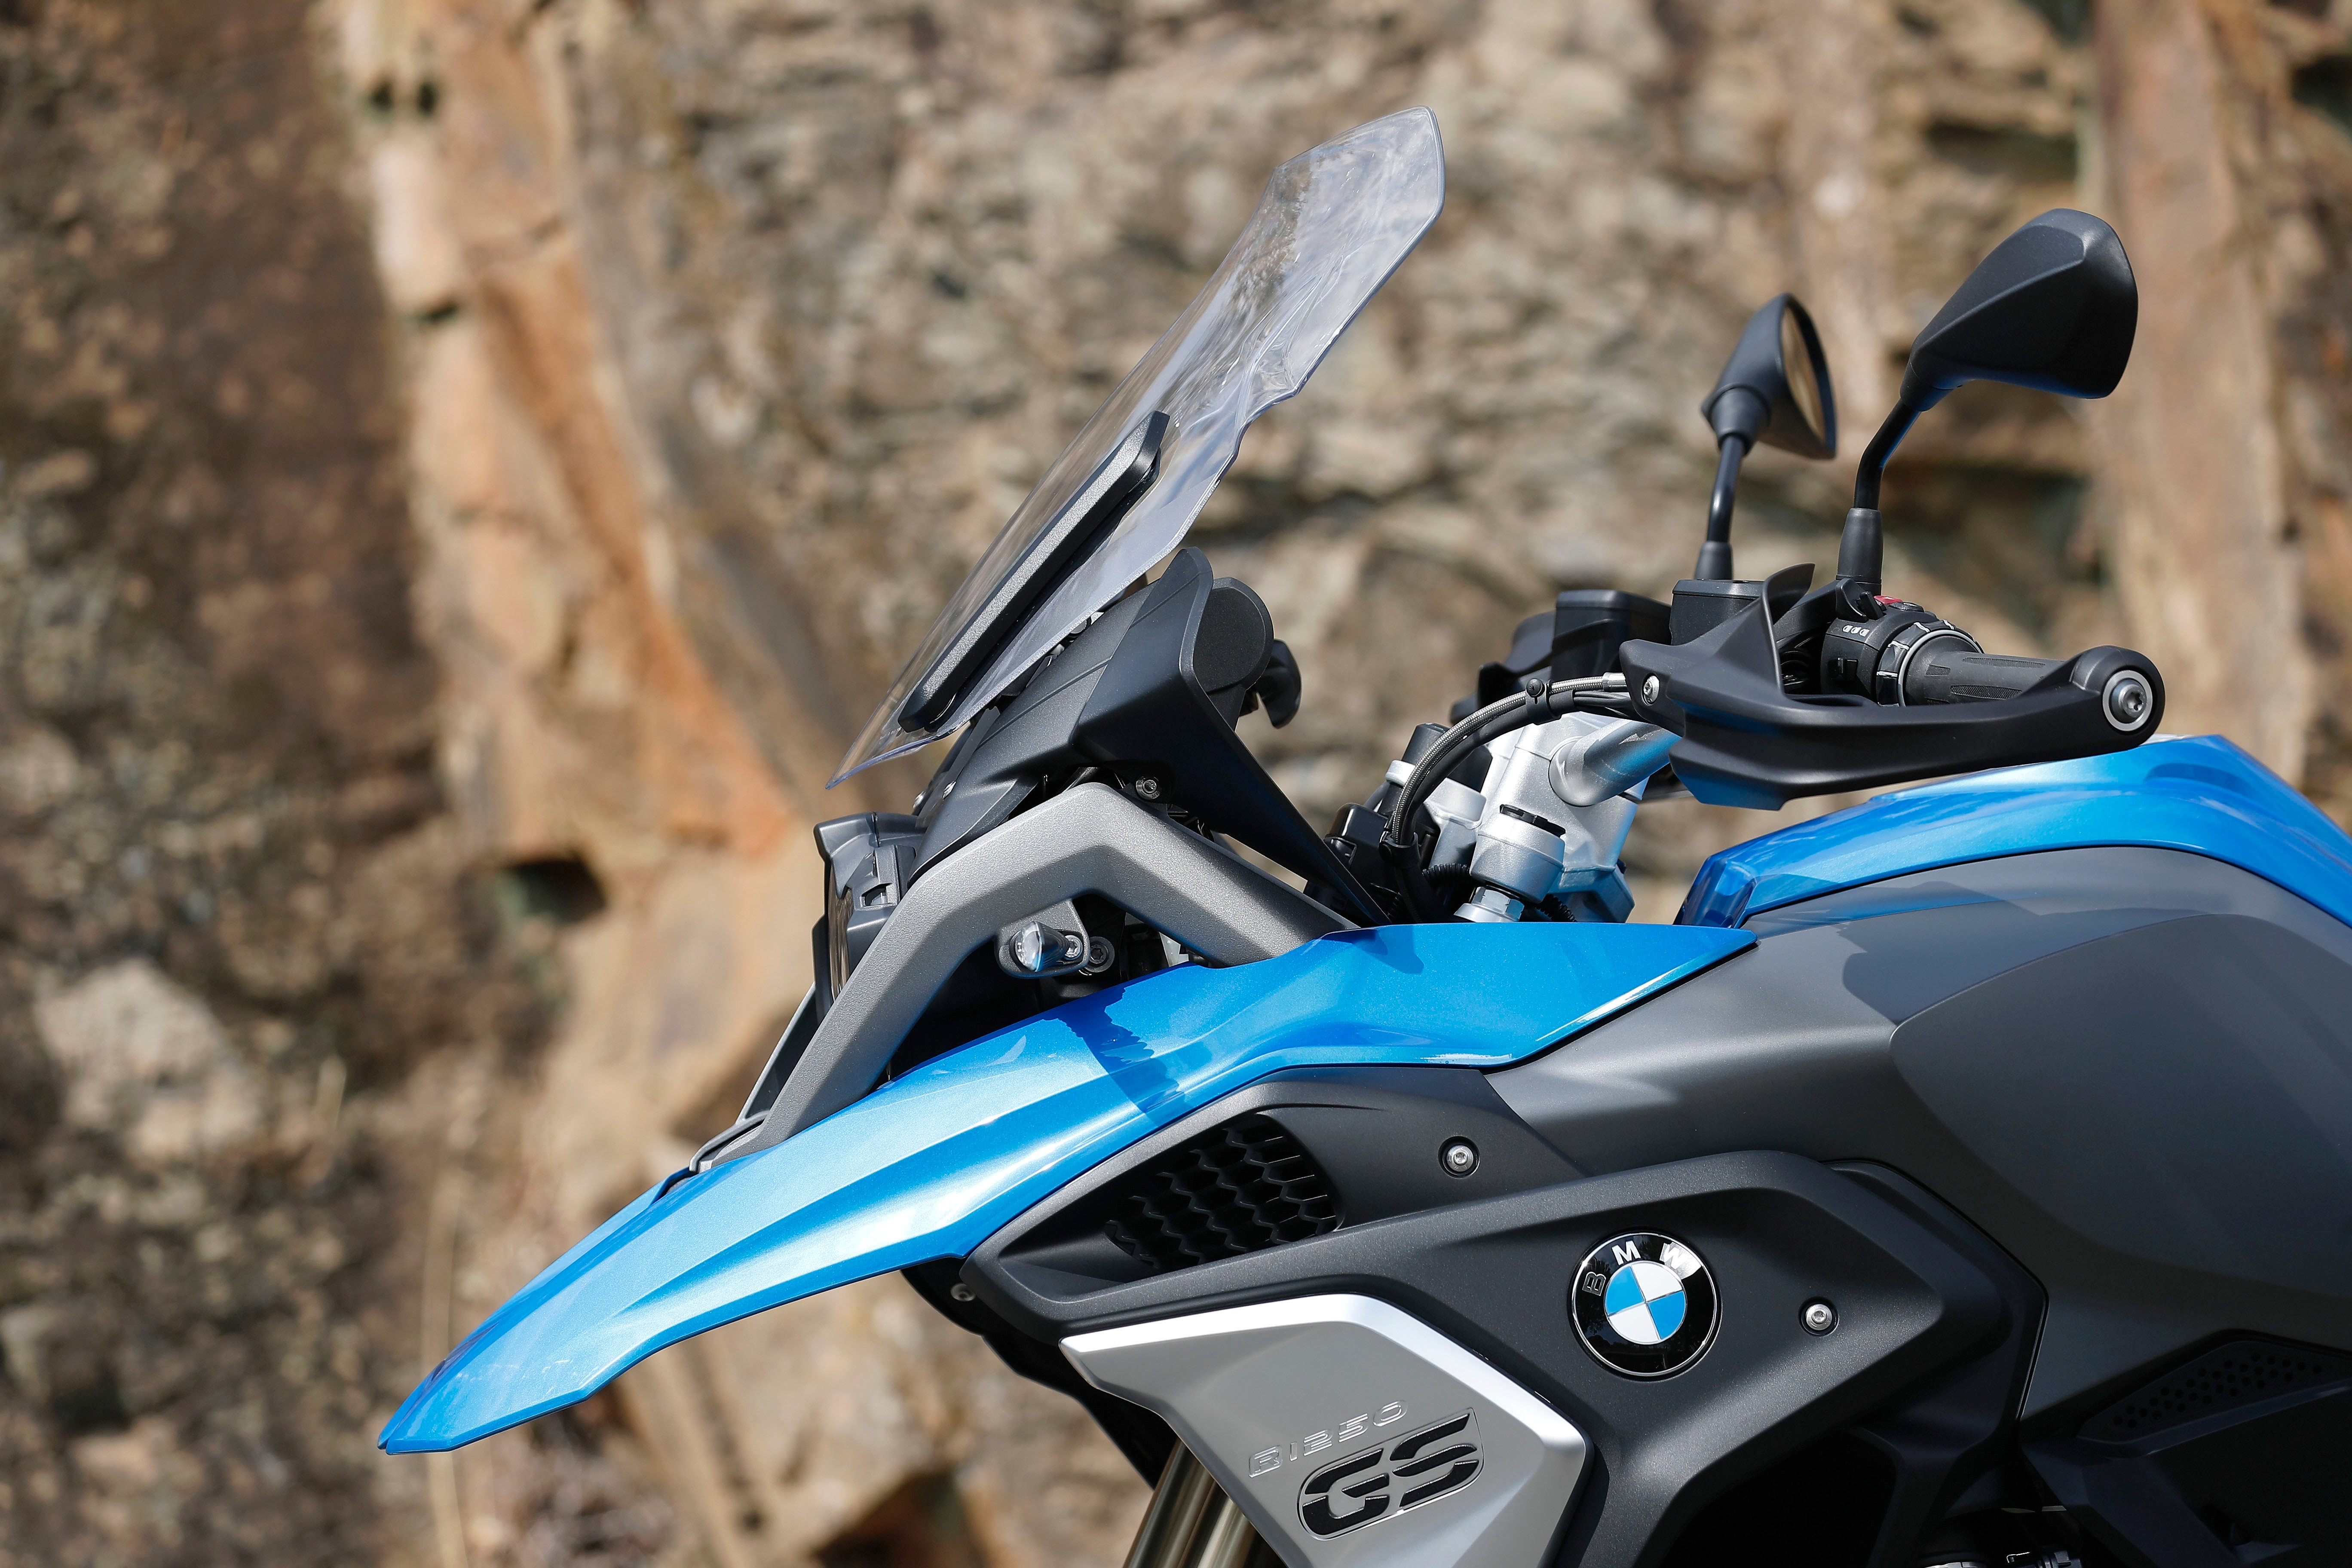 2019 Bmw R1250gs And R1250rt With Shiftcam Vvt Announced